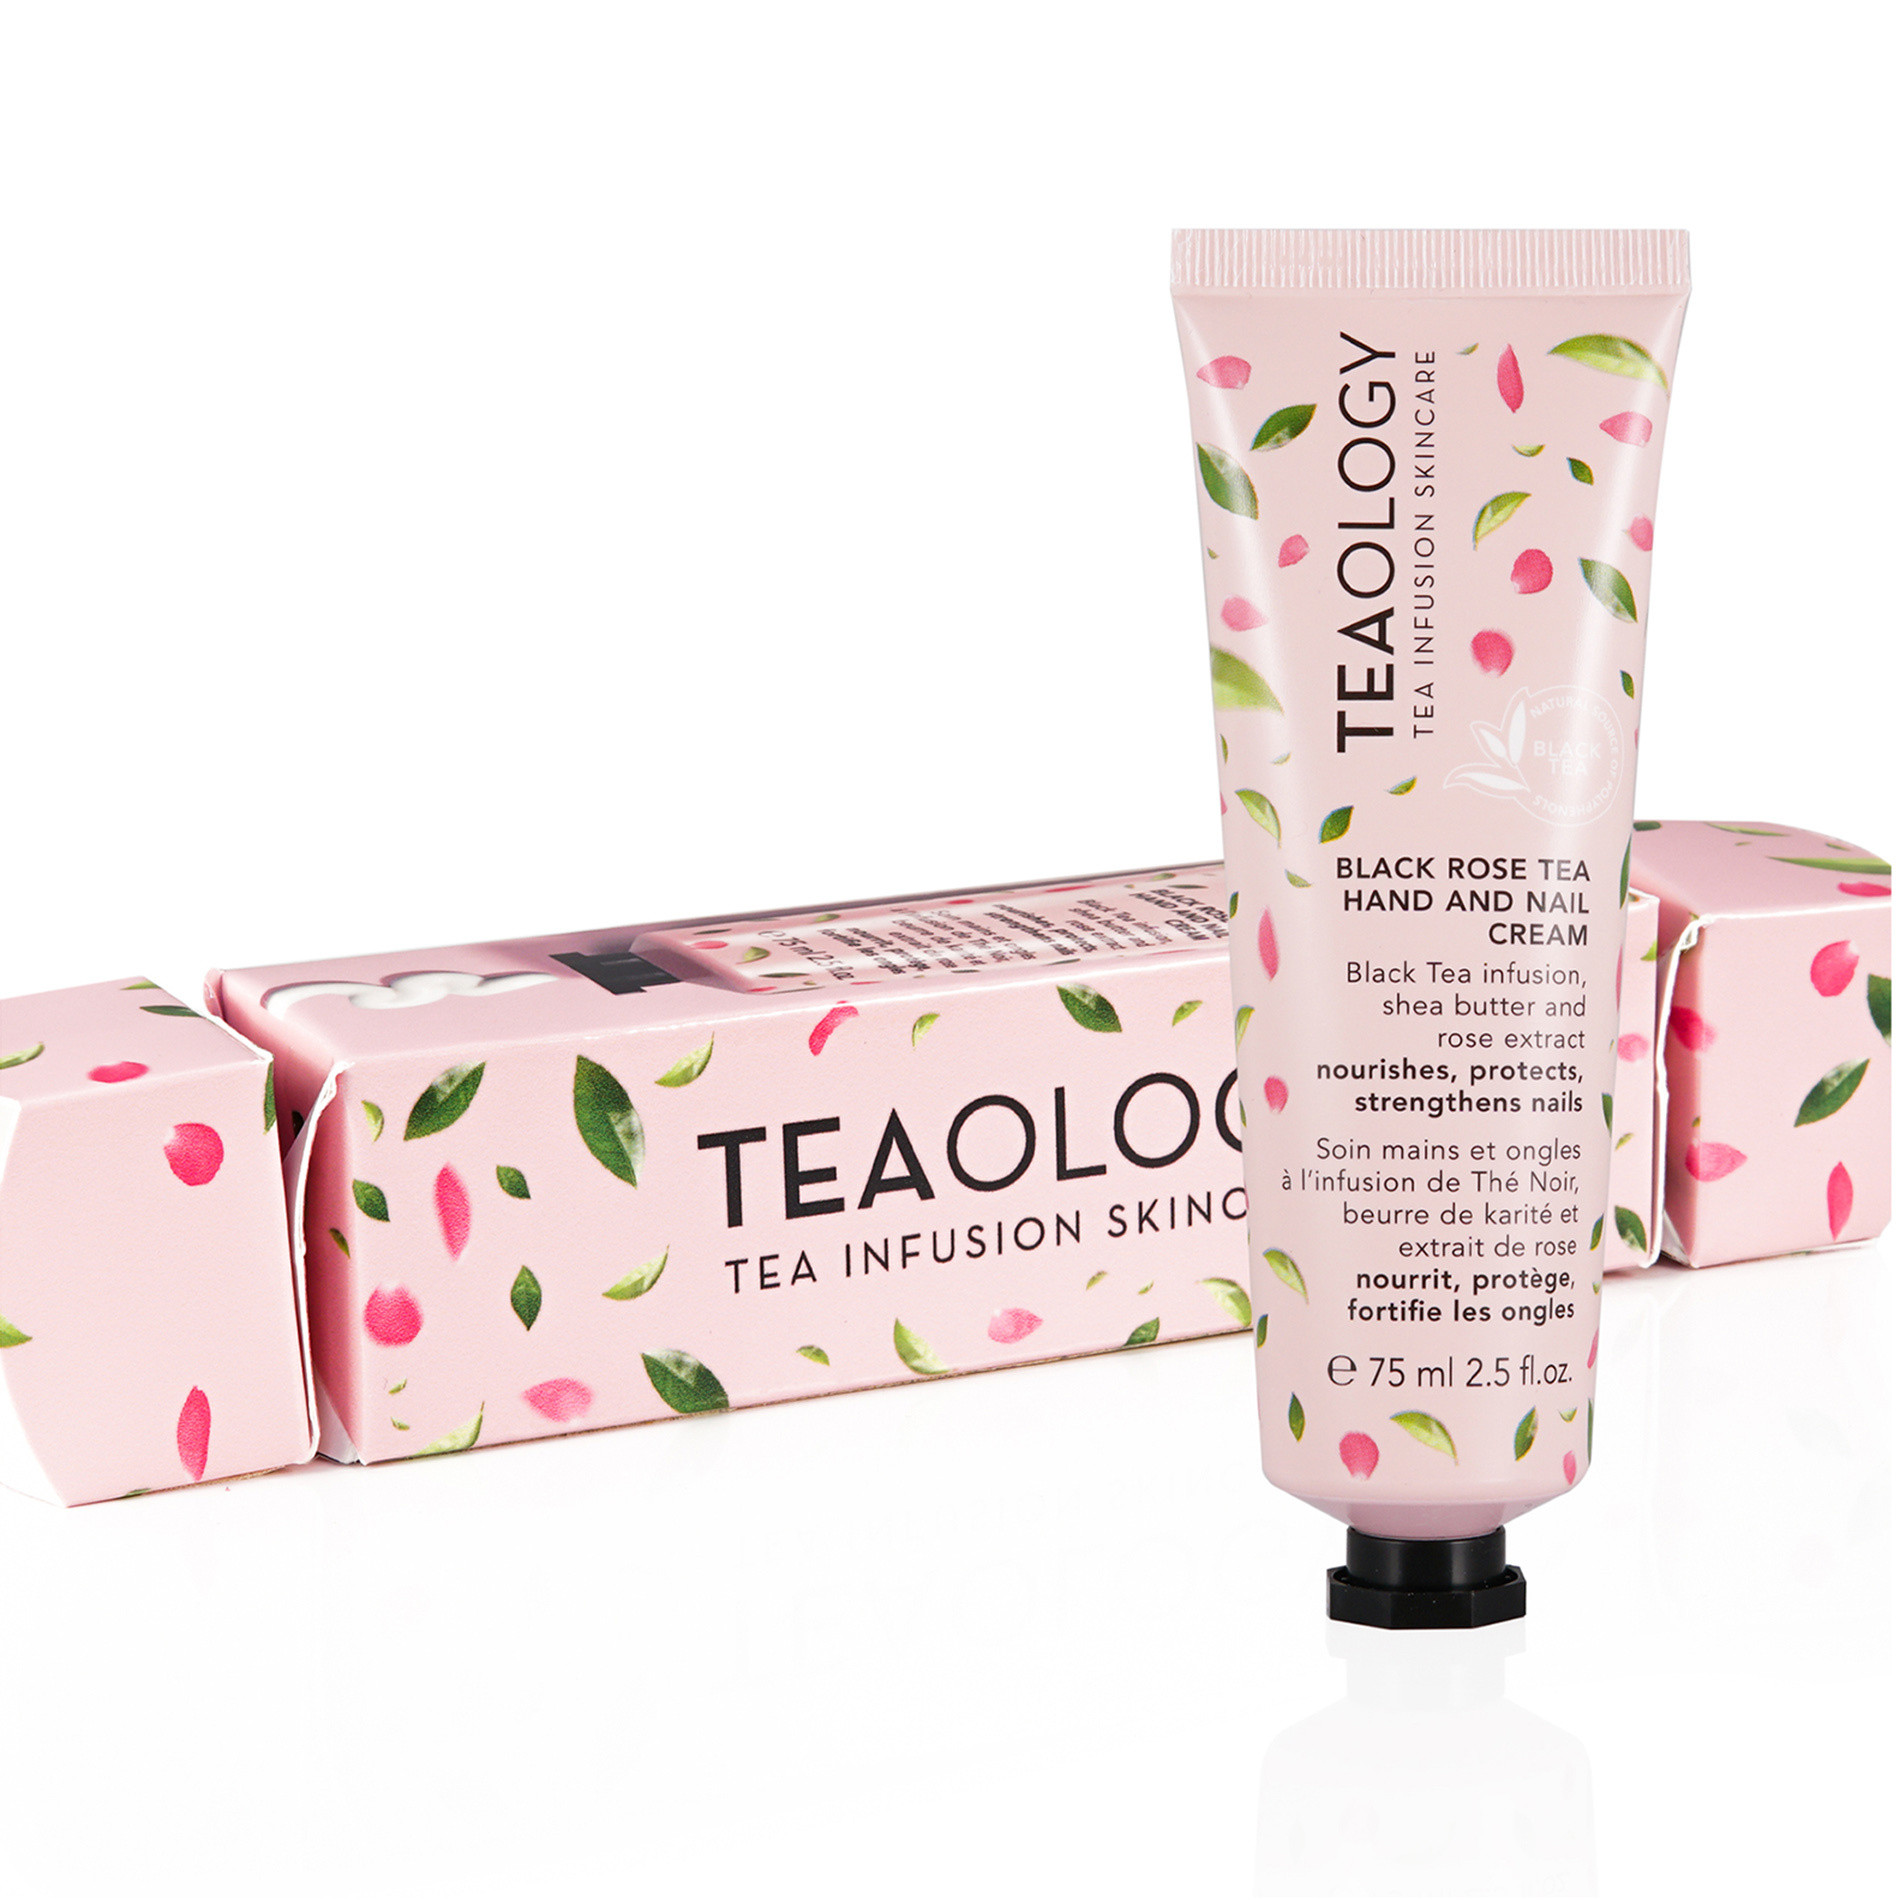 Black rose tea hand and nail cream candy wrap, Bianco, large image number 0